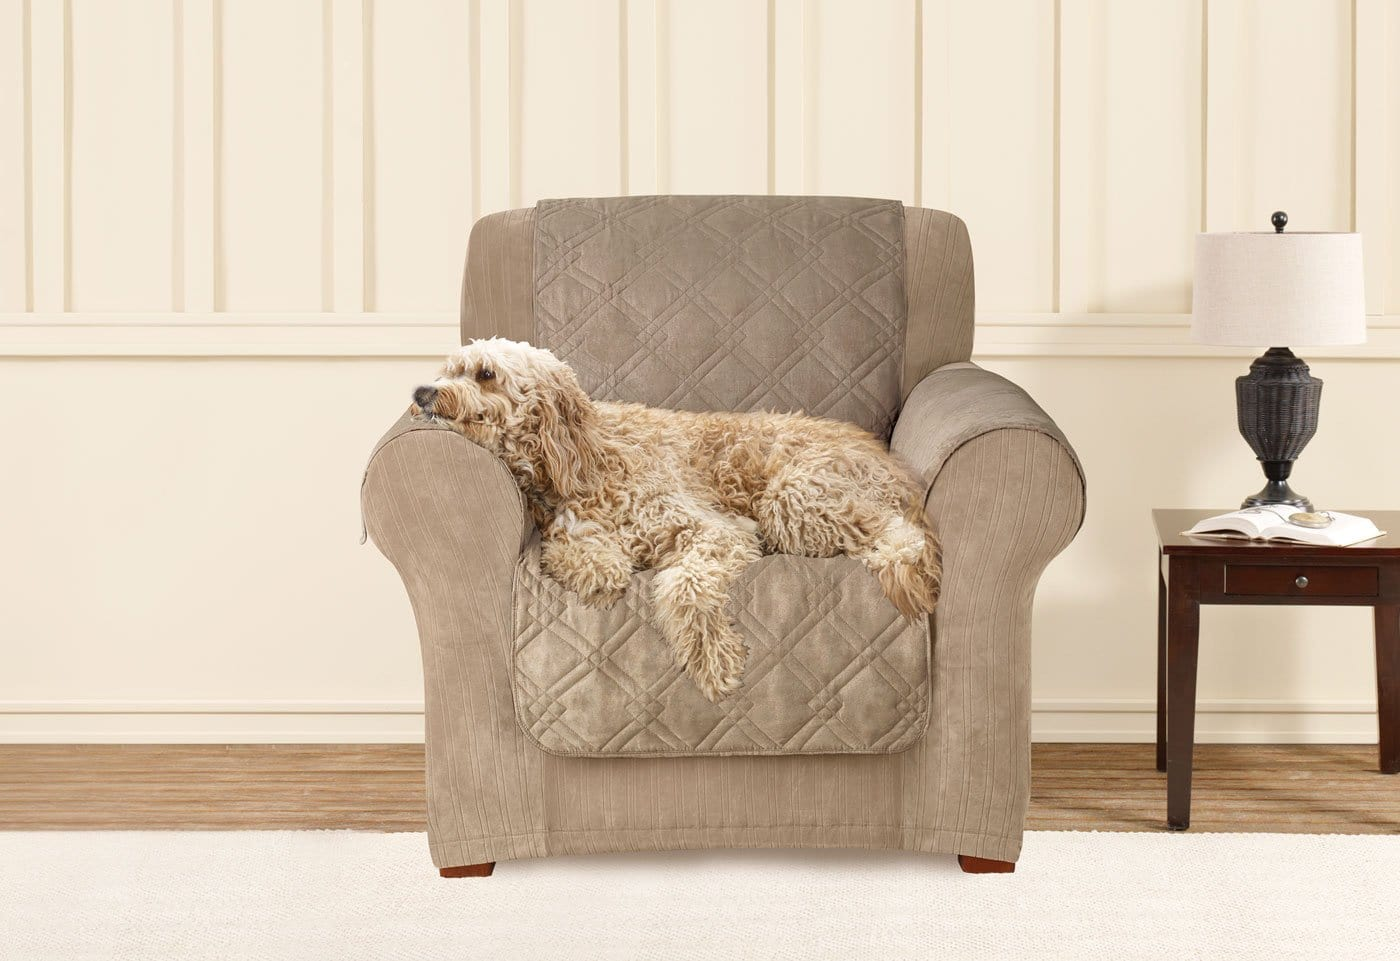 Dupont Cooling Quilted Chair Furniture Cover | SureFit